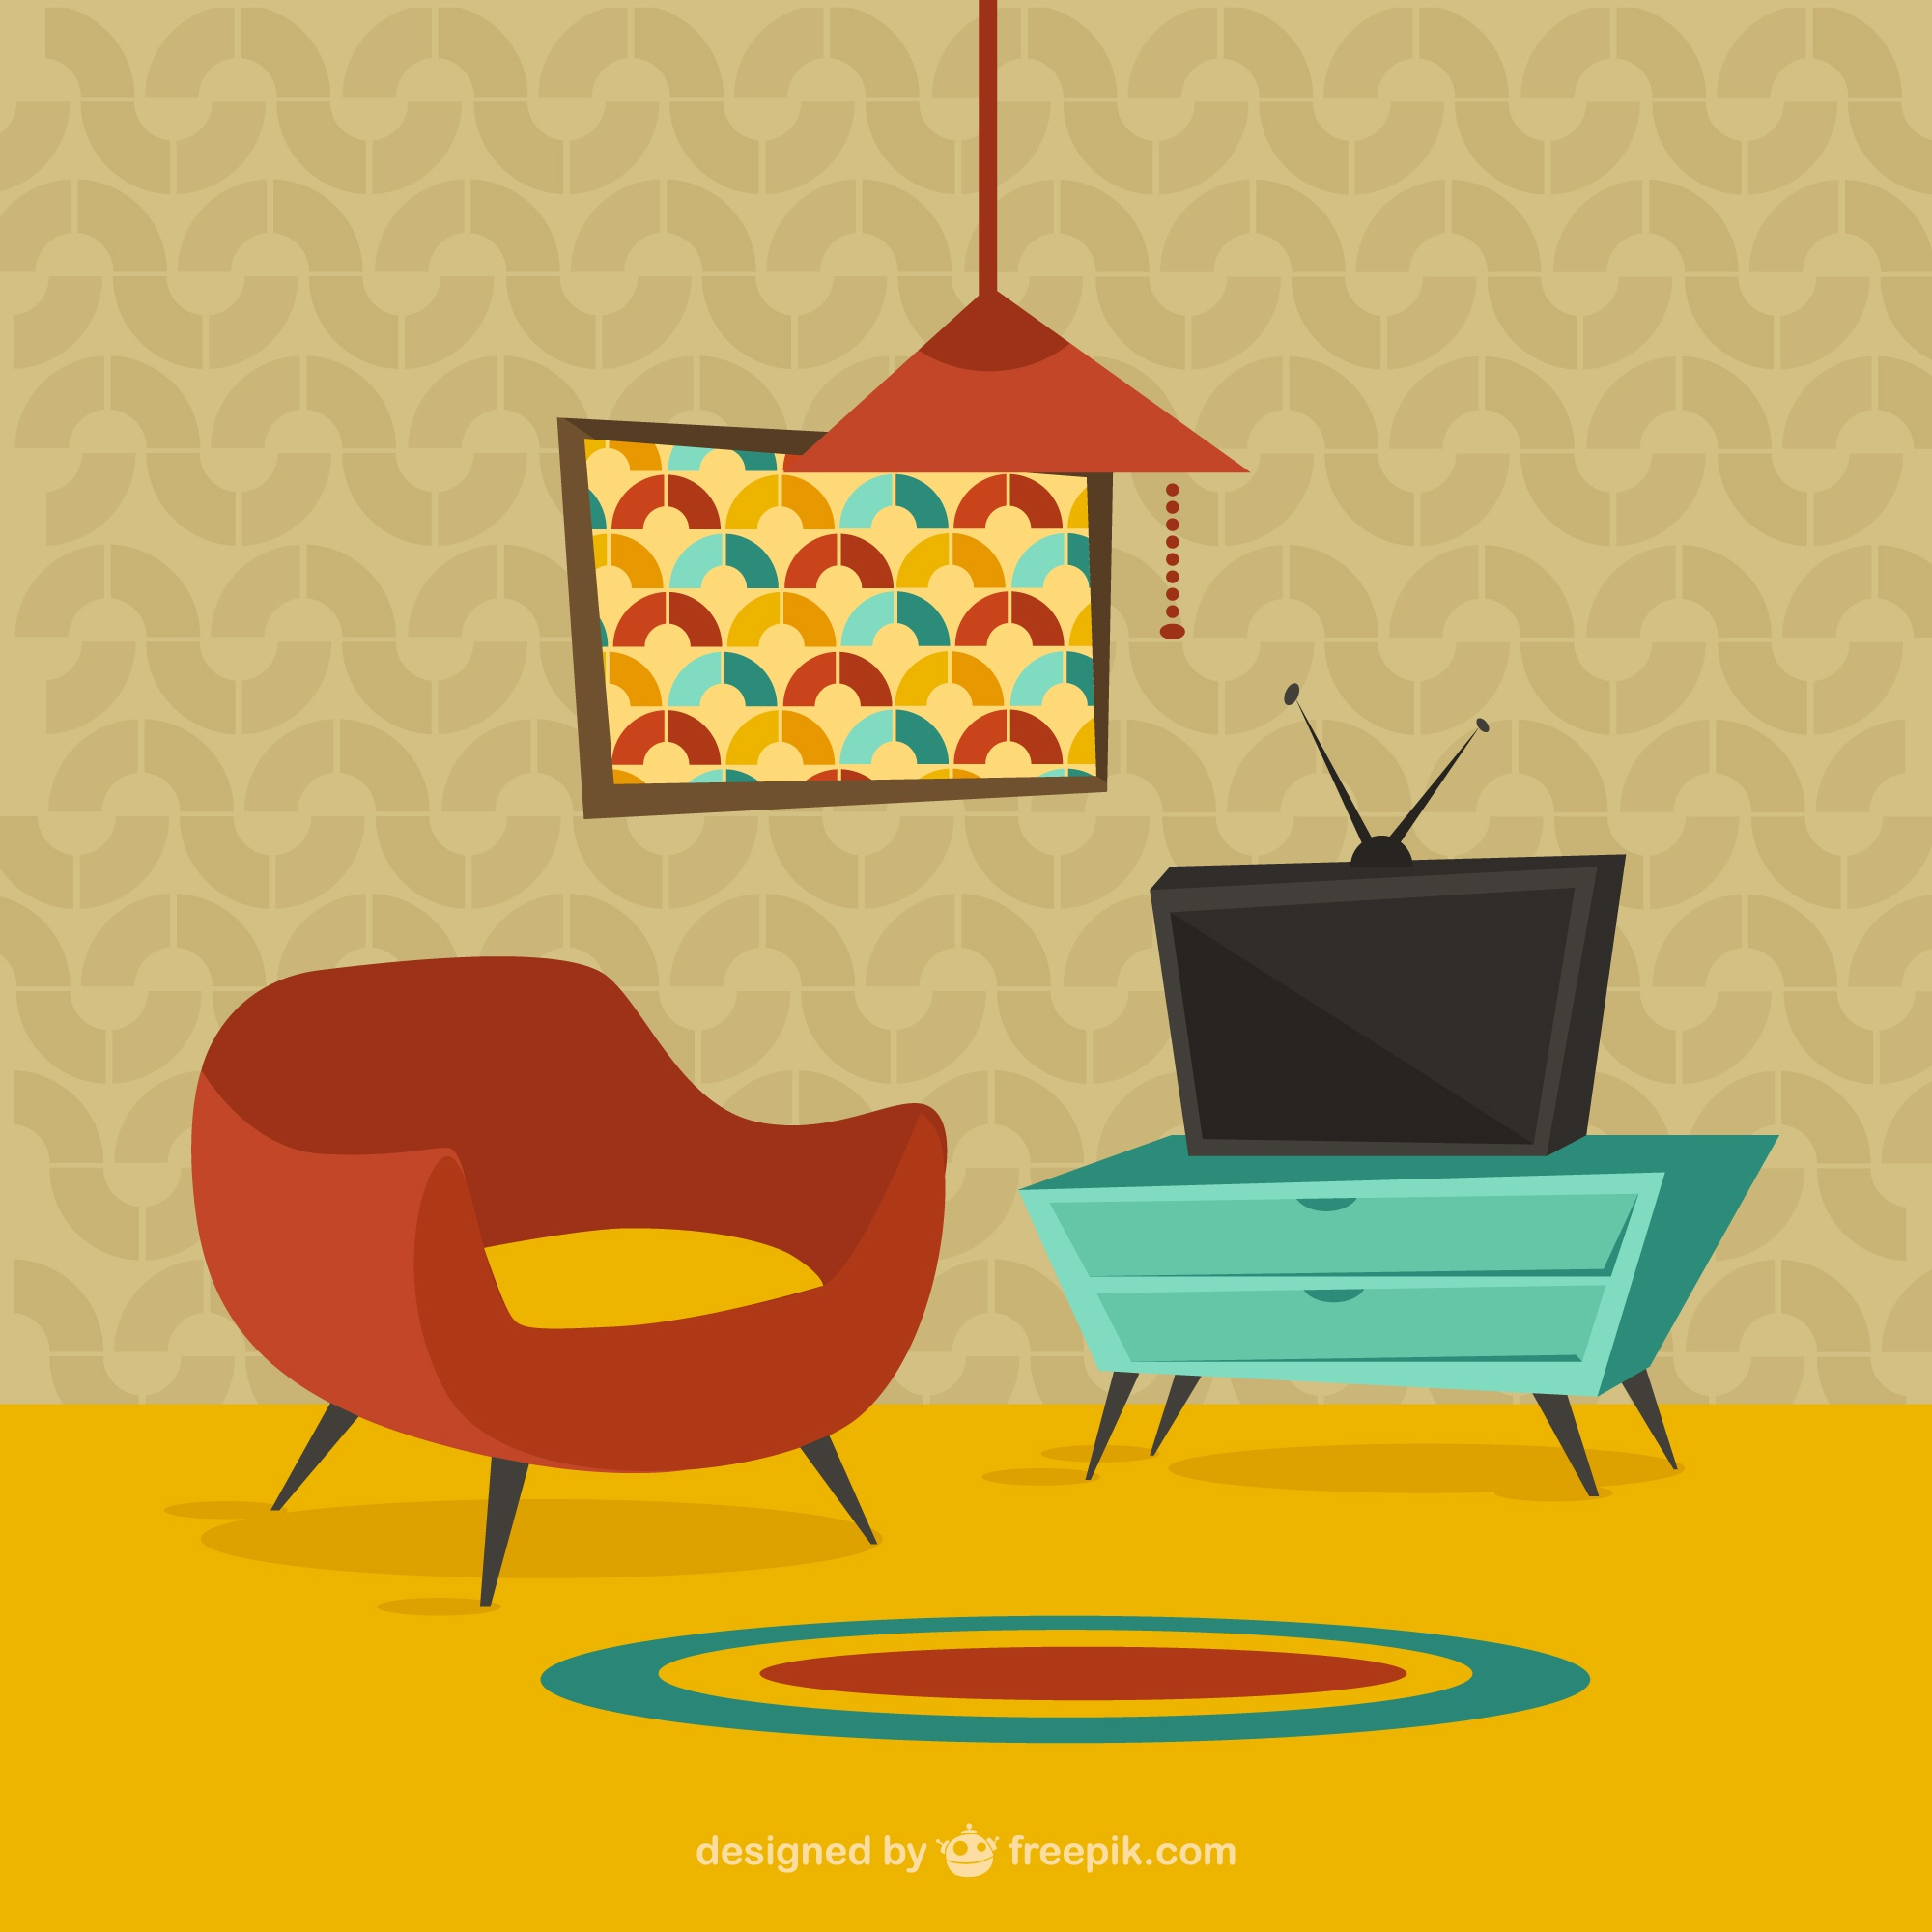 Home furniture in cartoon style